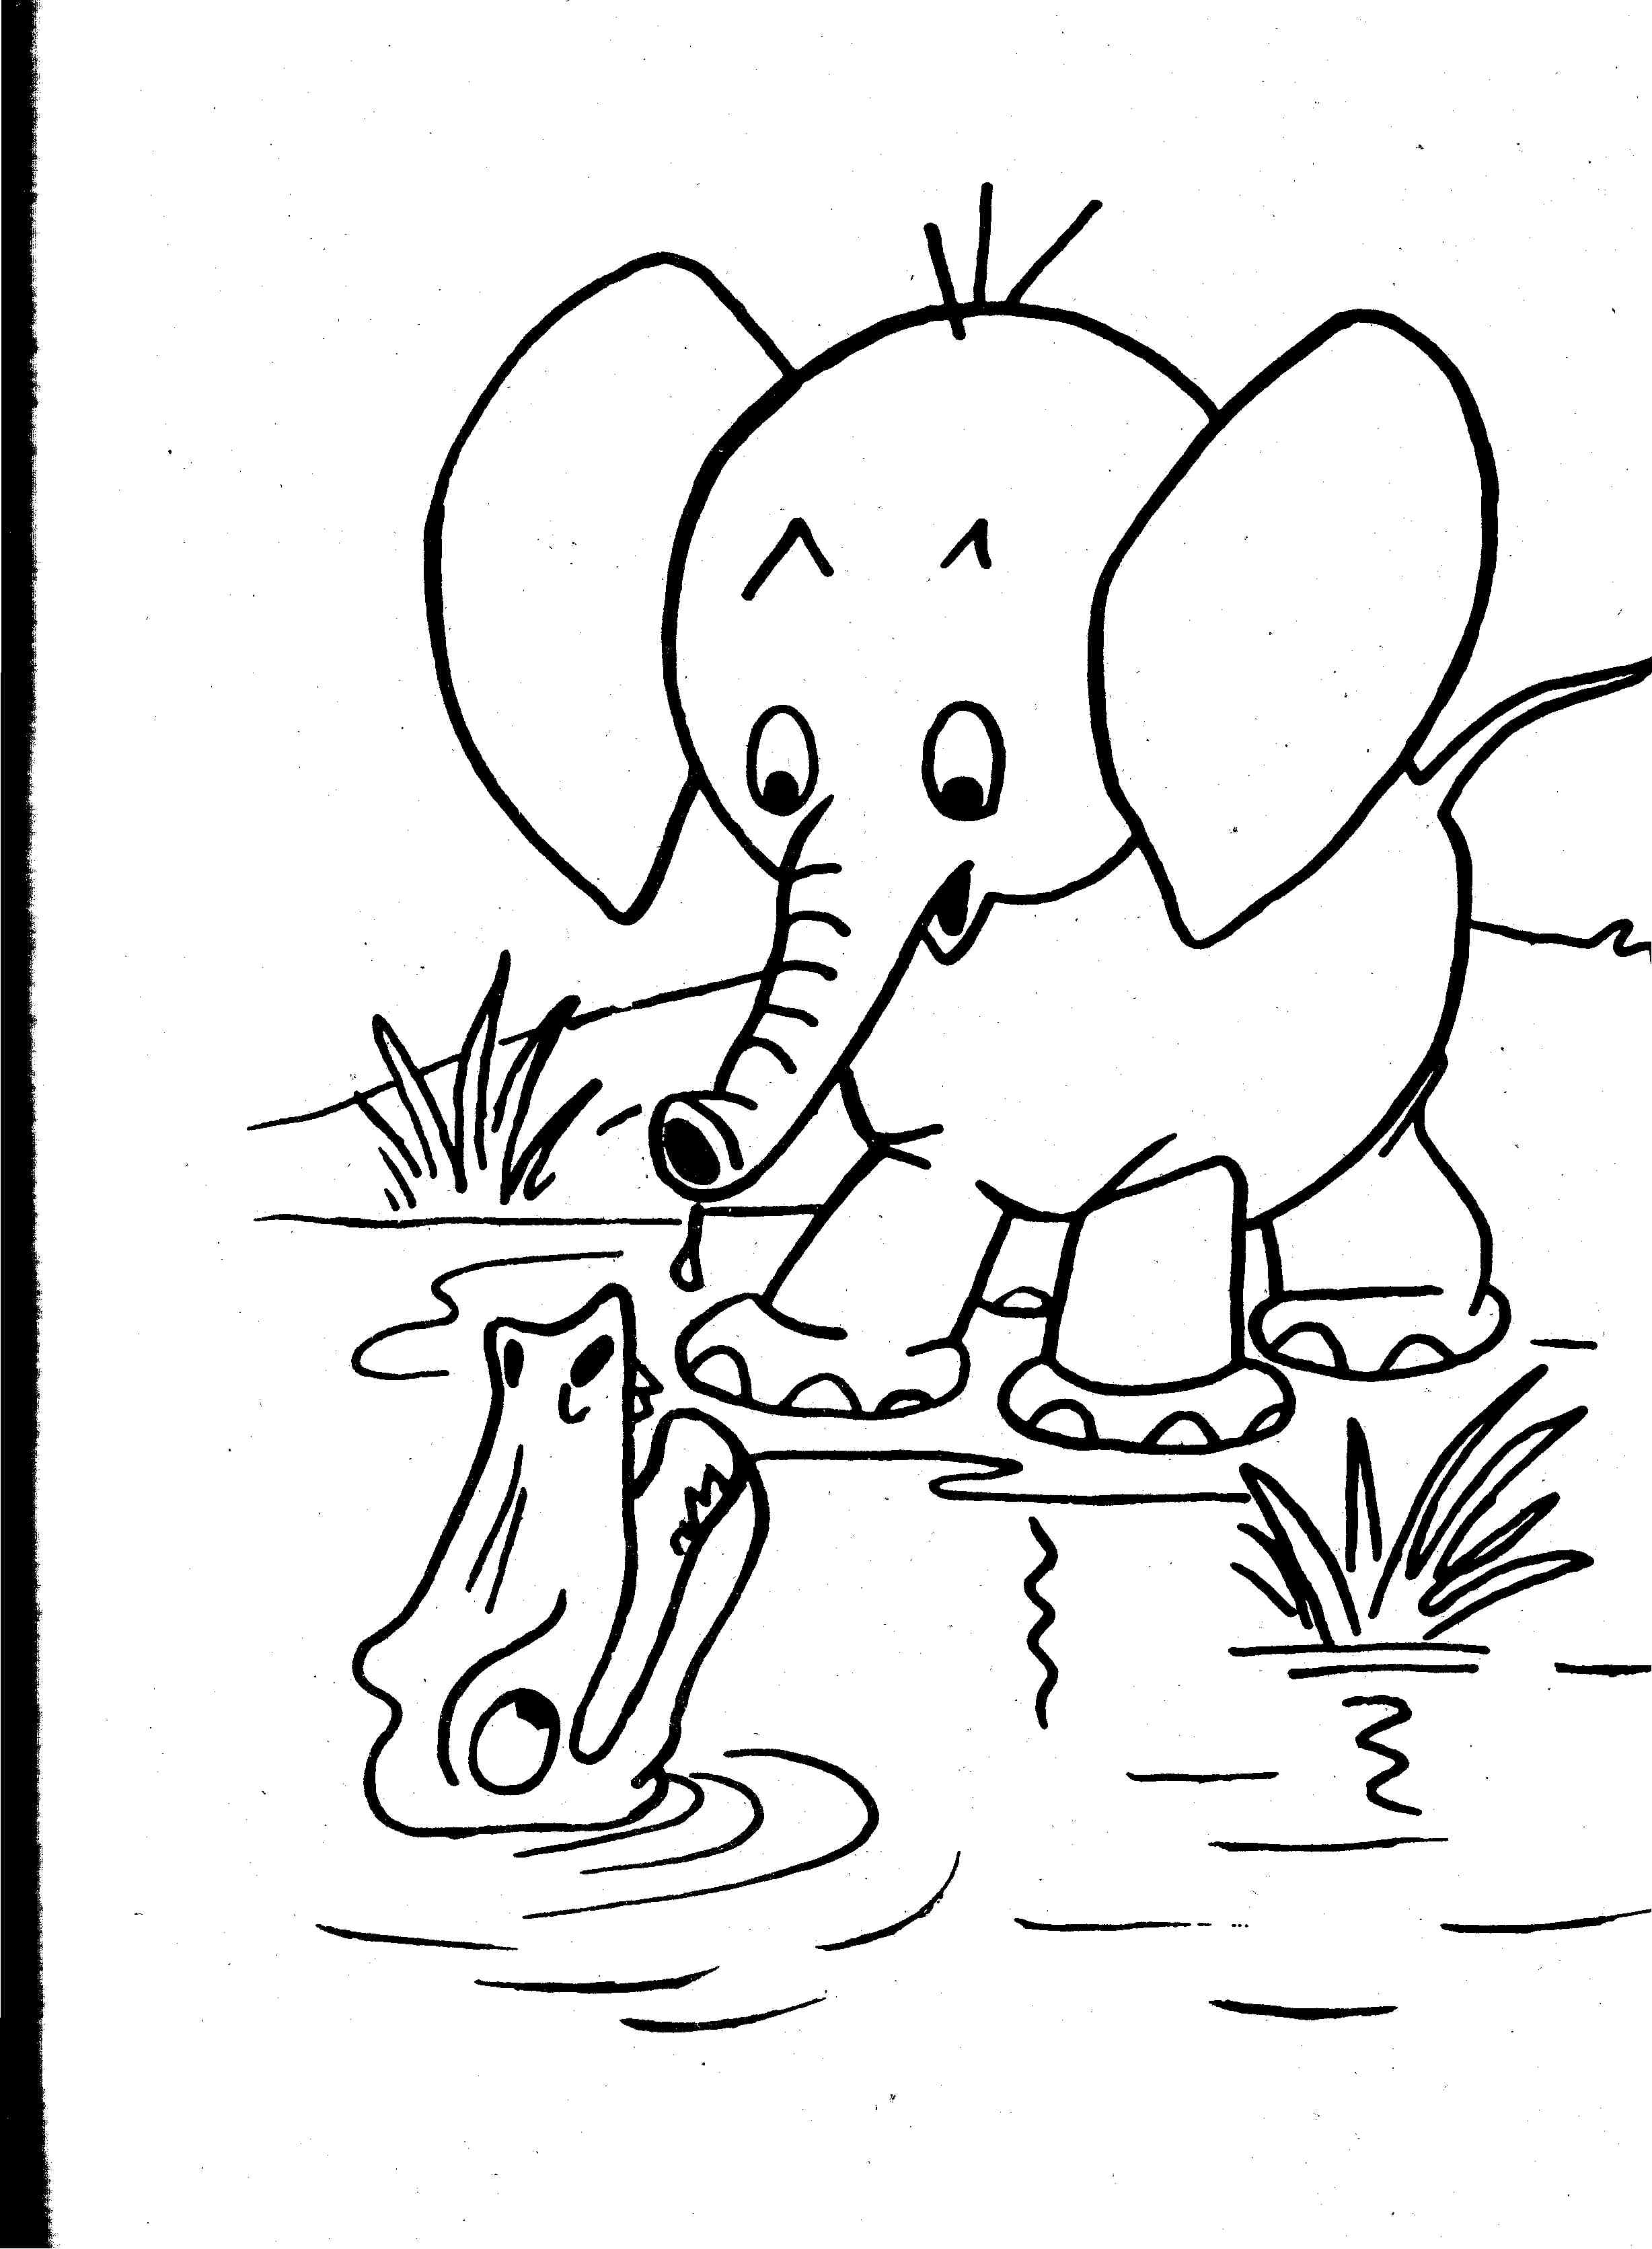 kids coloring pages freeware printable - photo#39